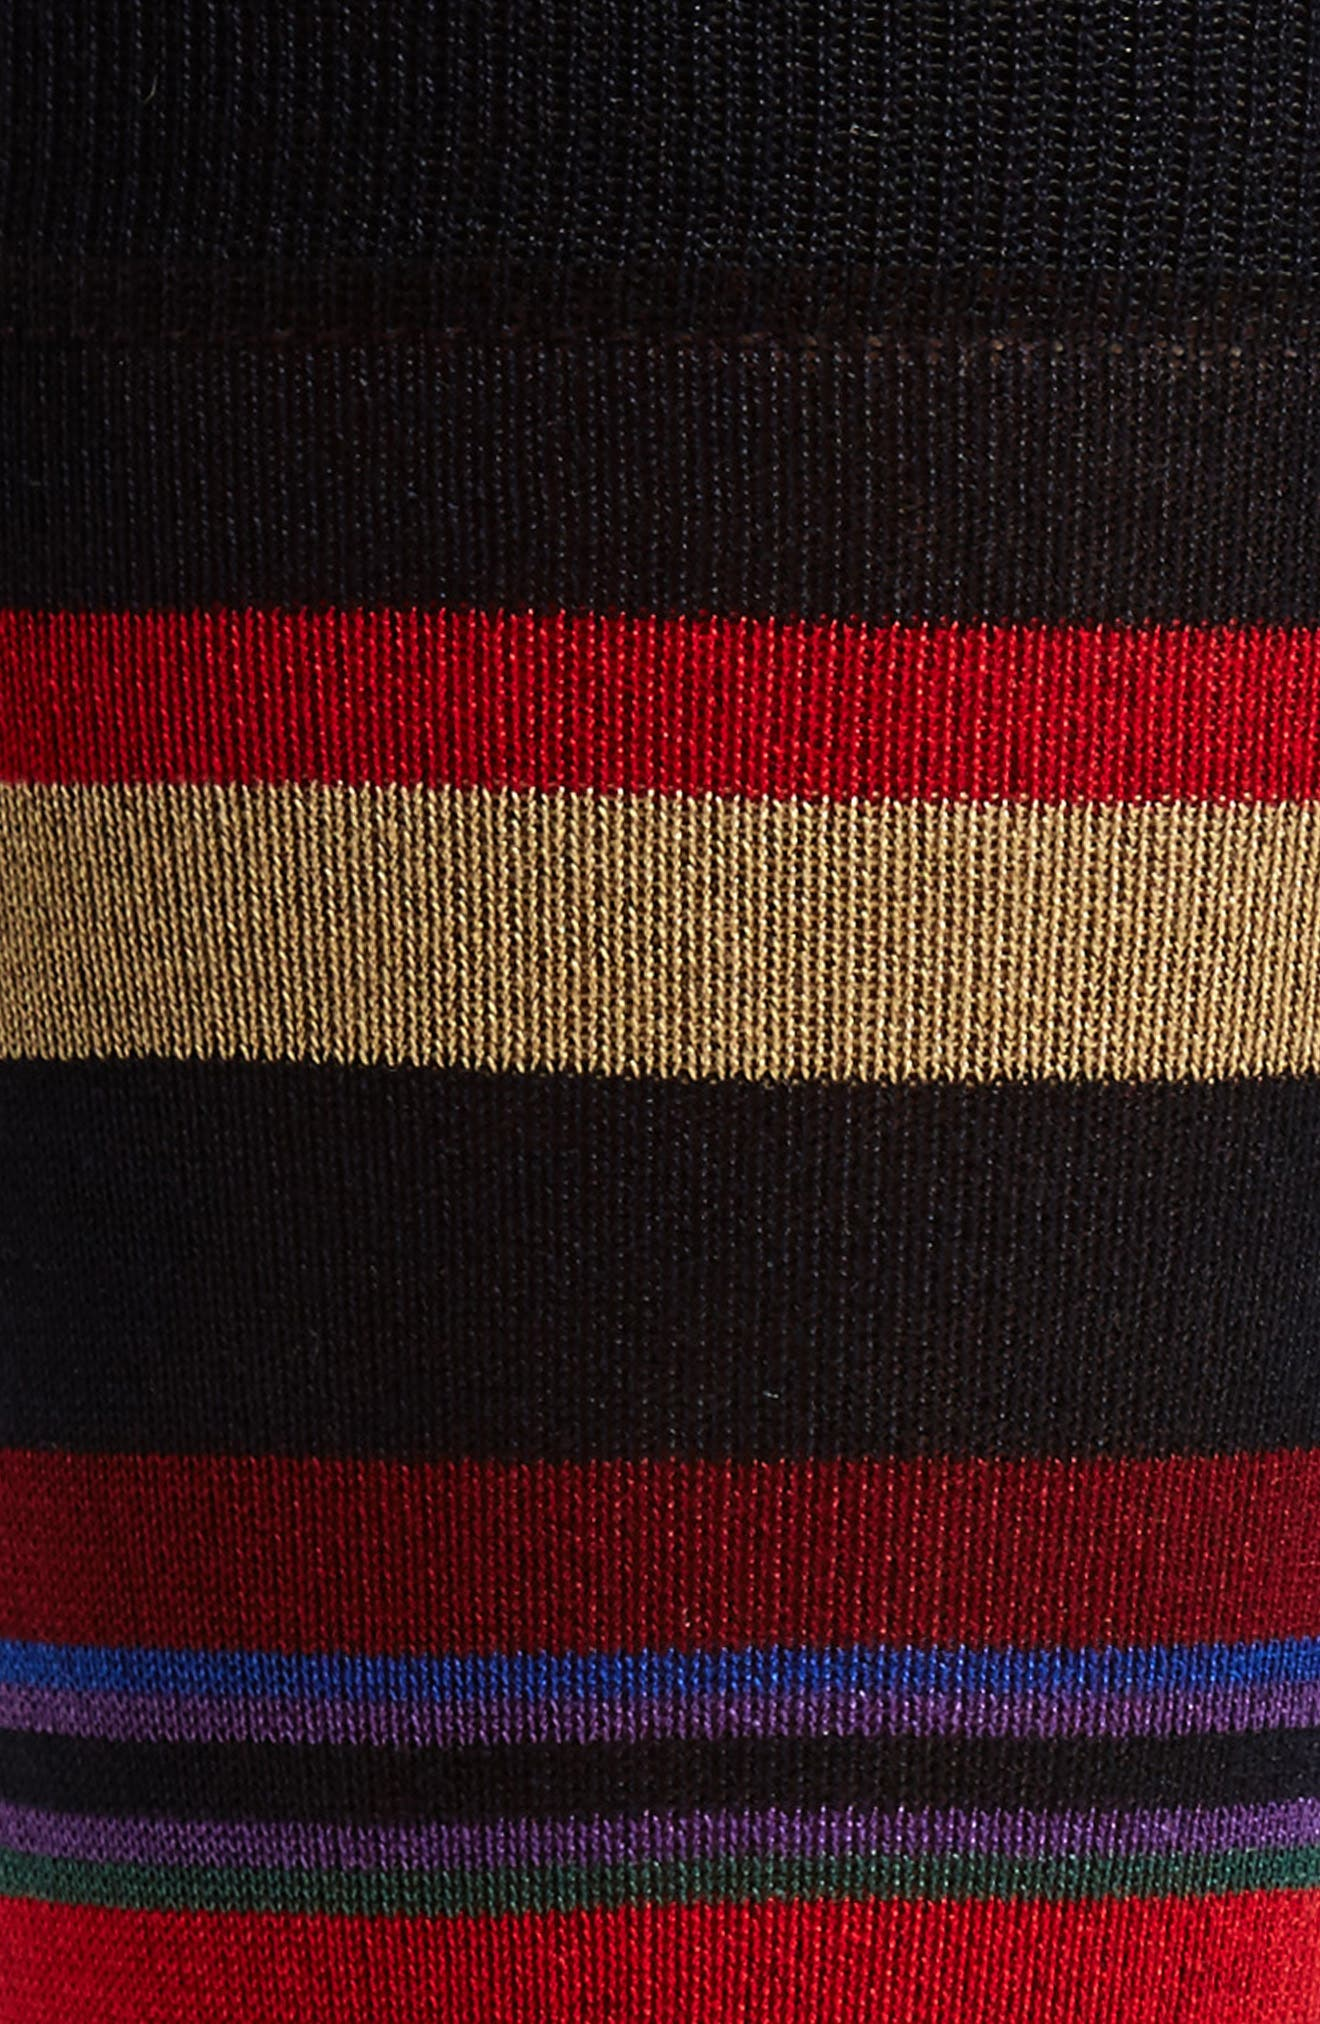 Stripe Crew Socks,                             Alternate thumbnail 2, color,                             410